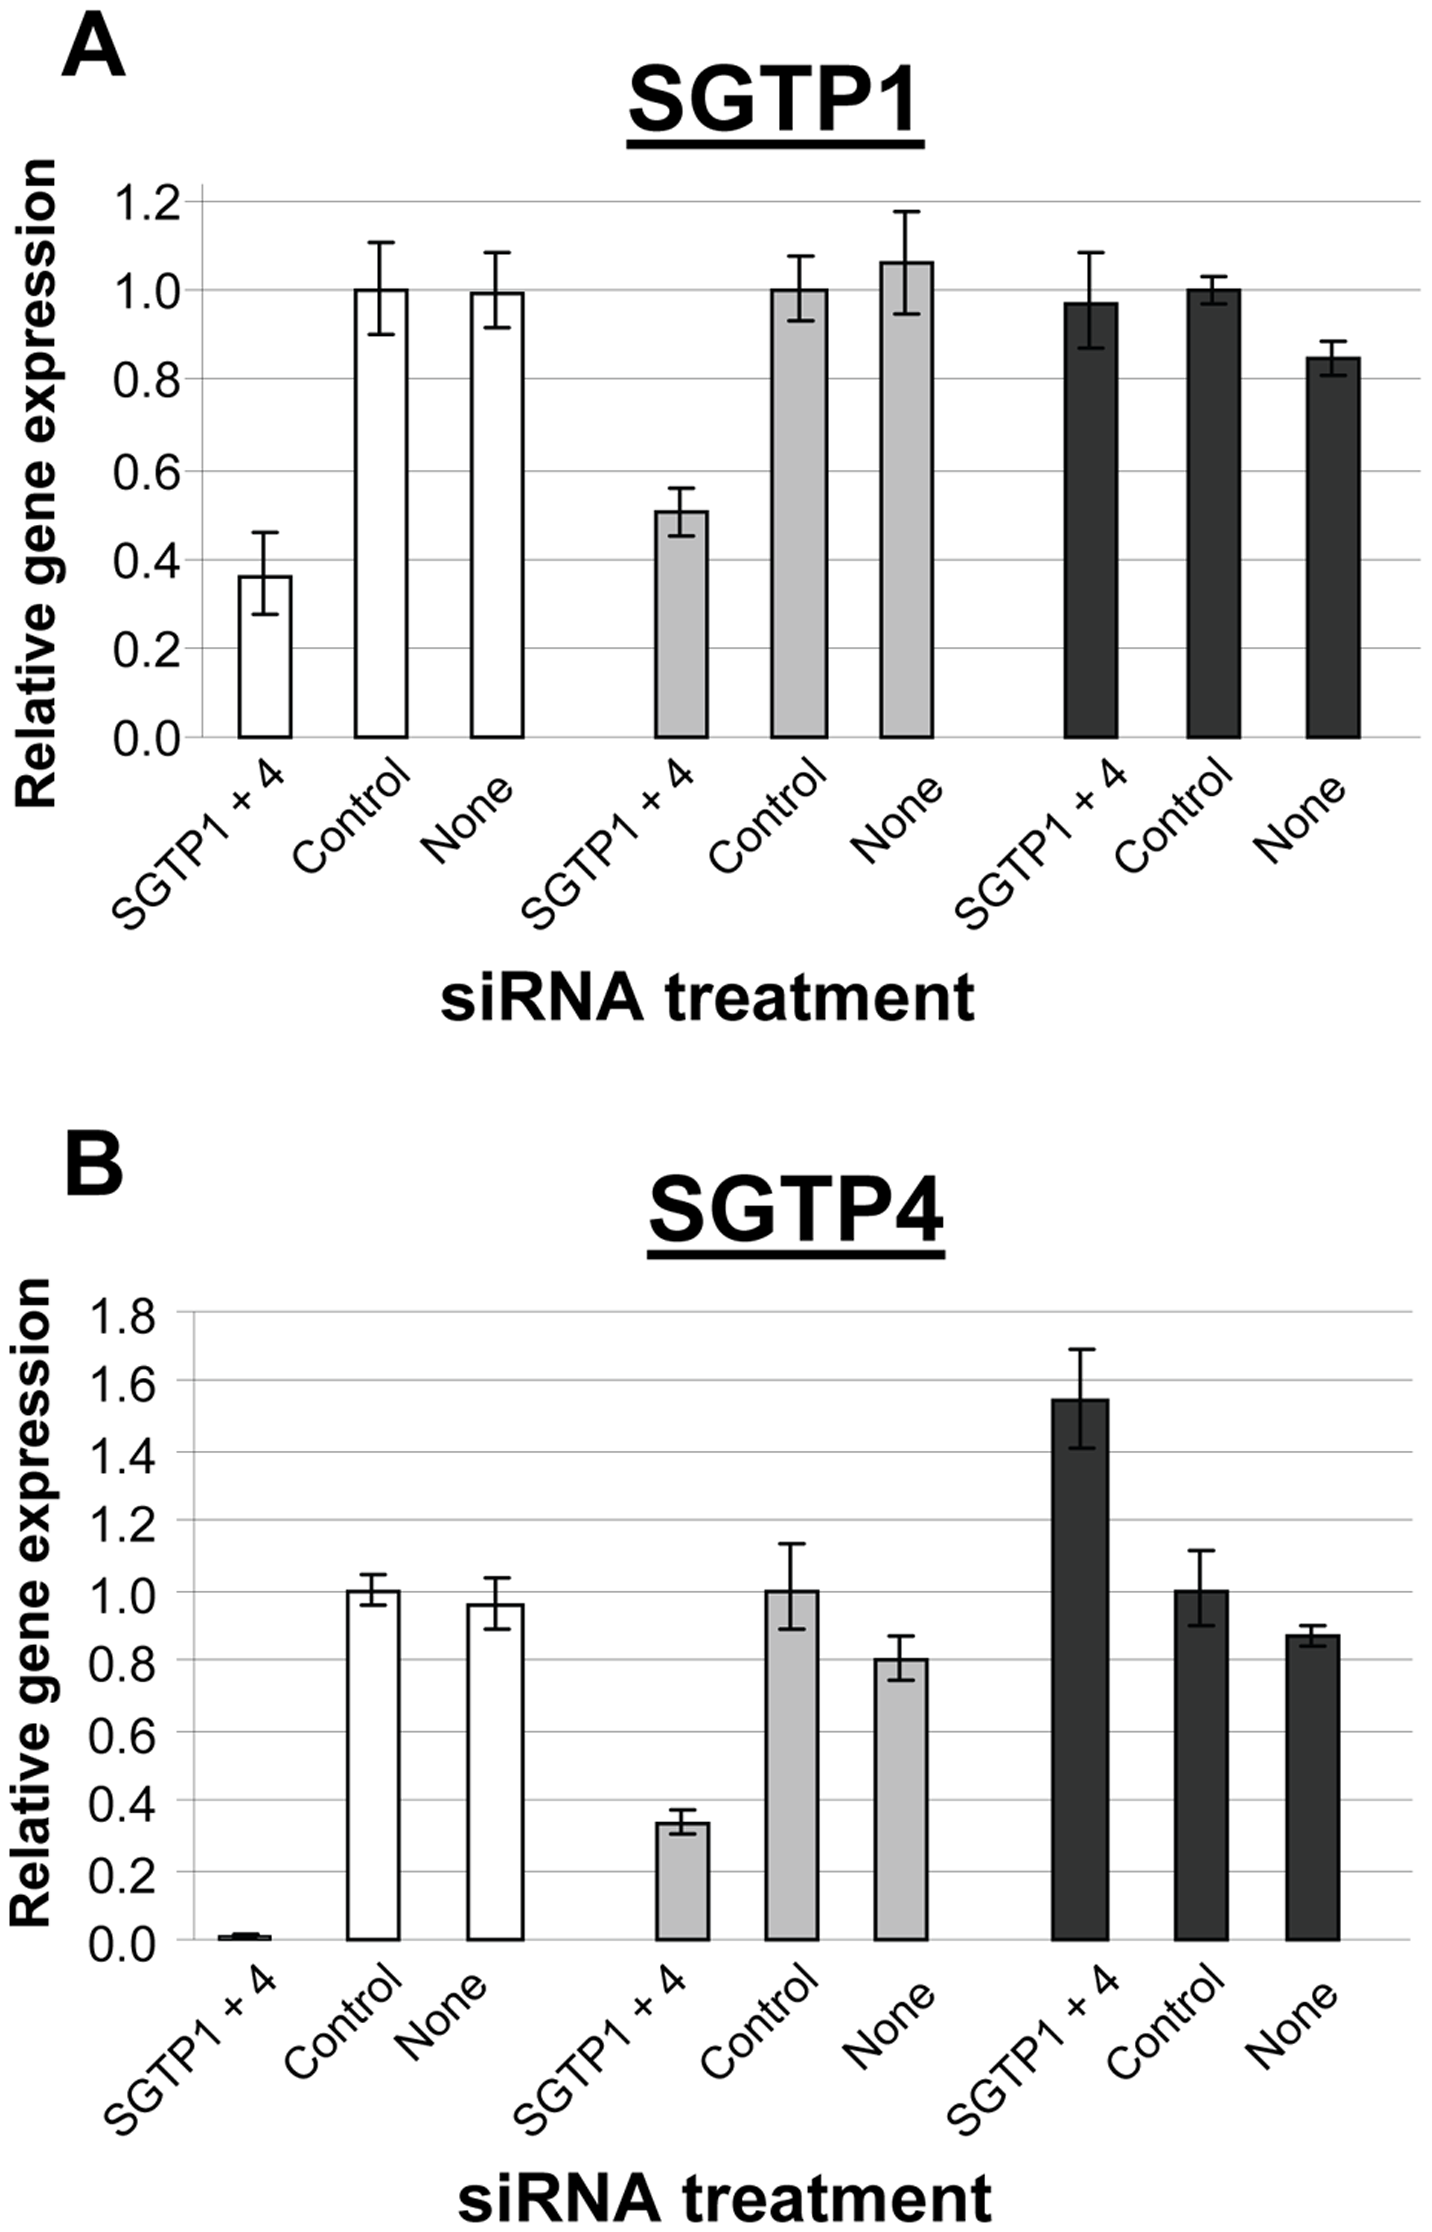 Expression of SGTP1 and SGTP4 (mean ± SE) in schistosomula at different times after treatment with the indicated siRNA.